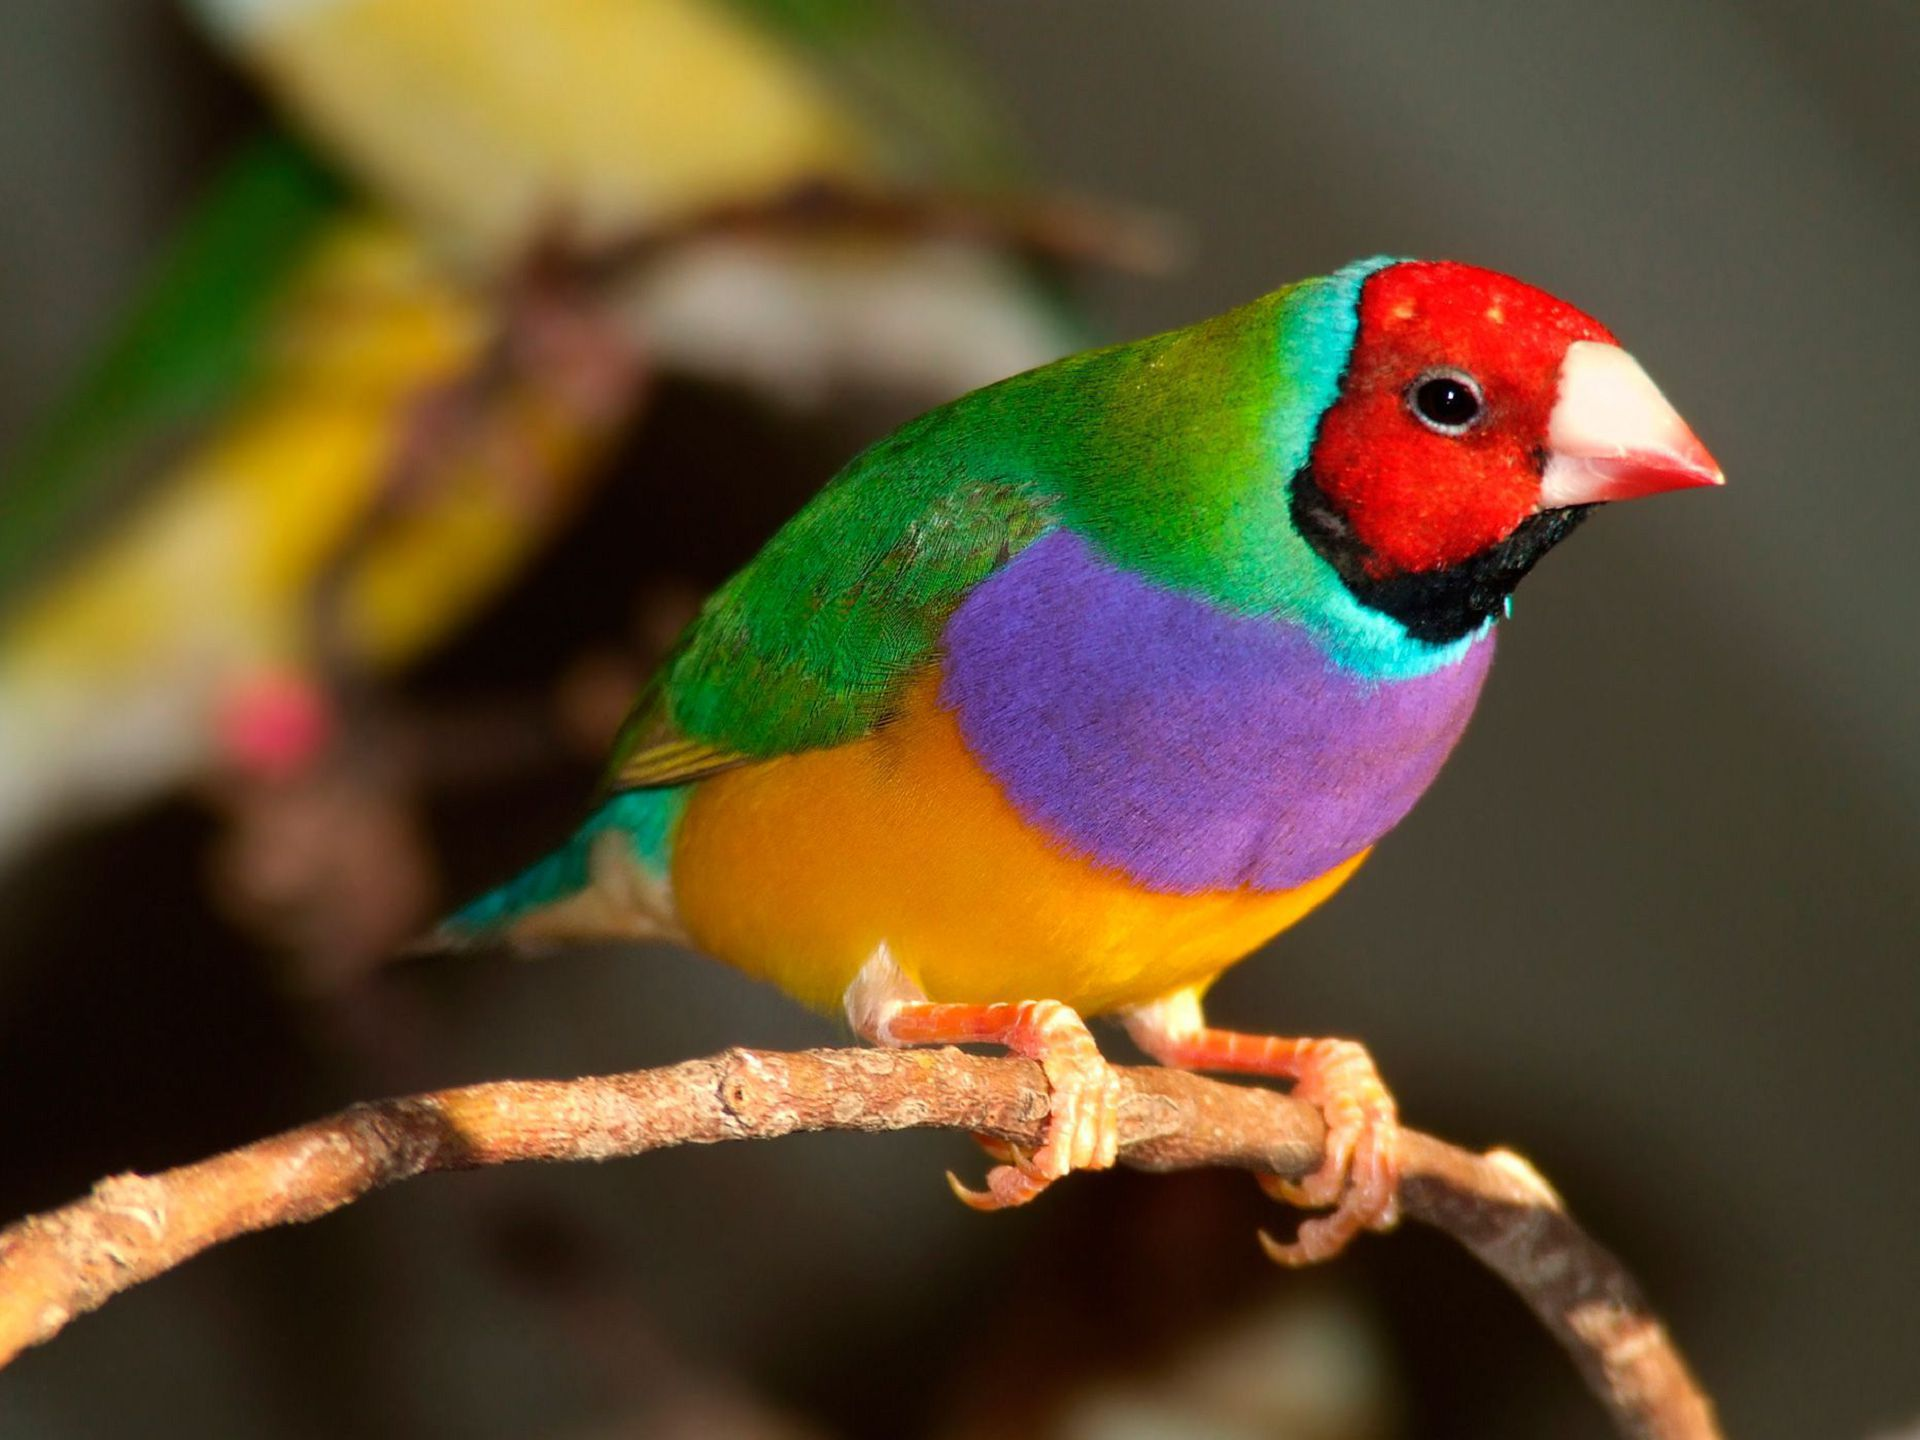 Aves Exoticas High Definition Wallpapers